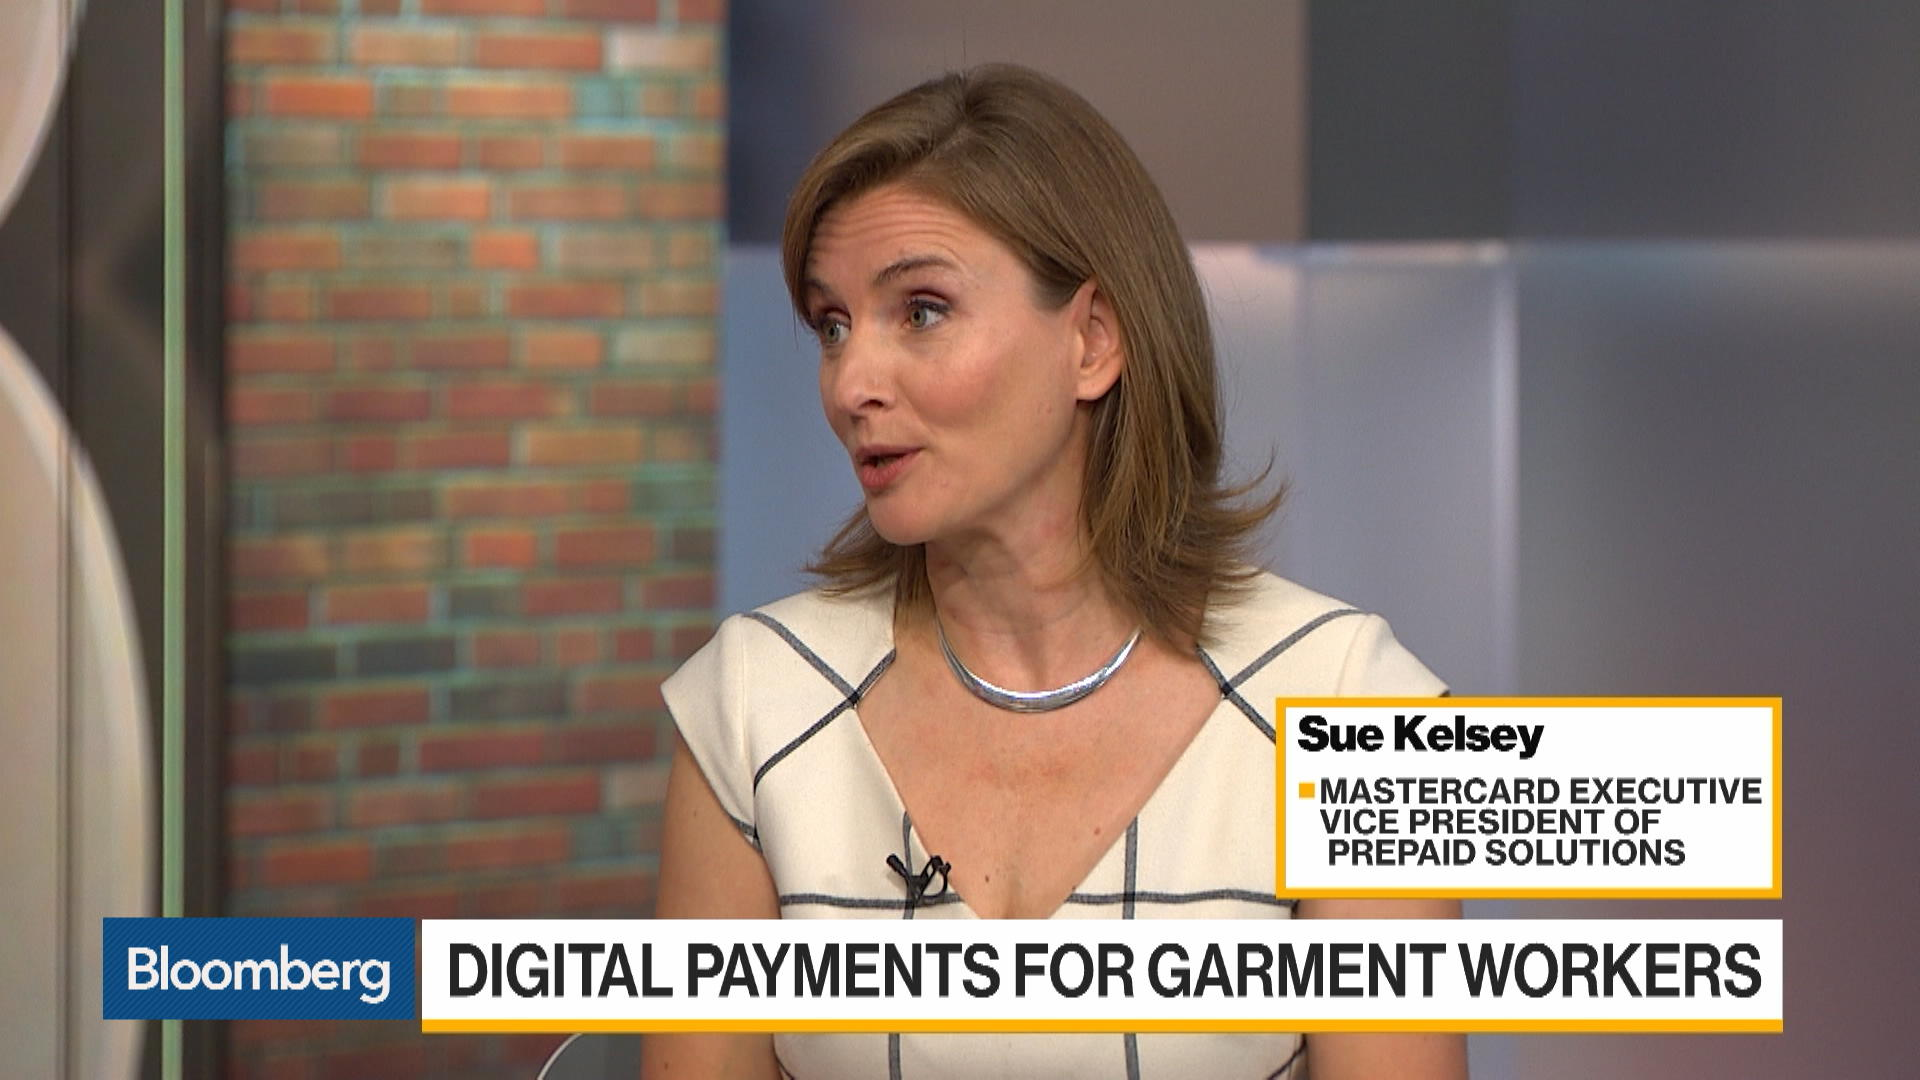 How Mastercard Is Bringing Digital Payments to the Global Garment Industry